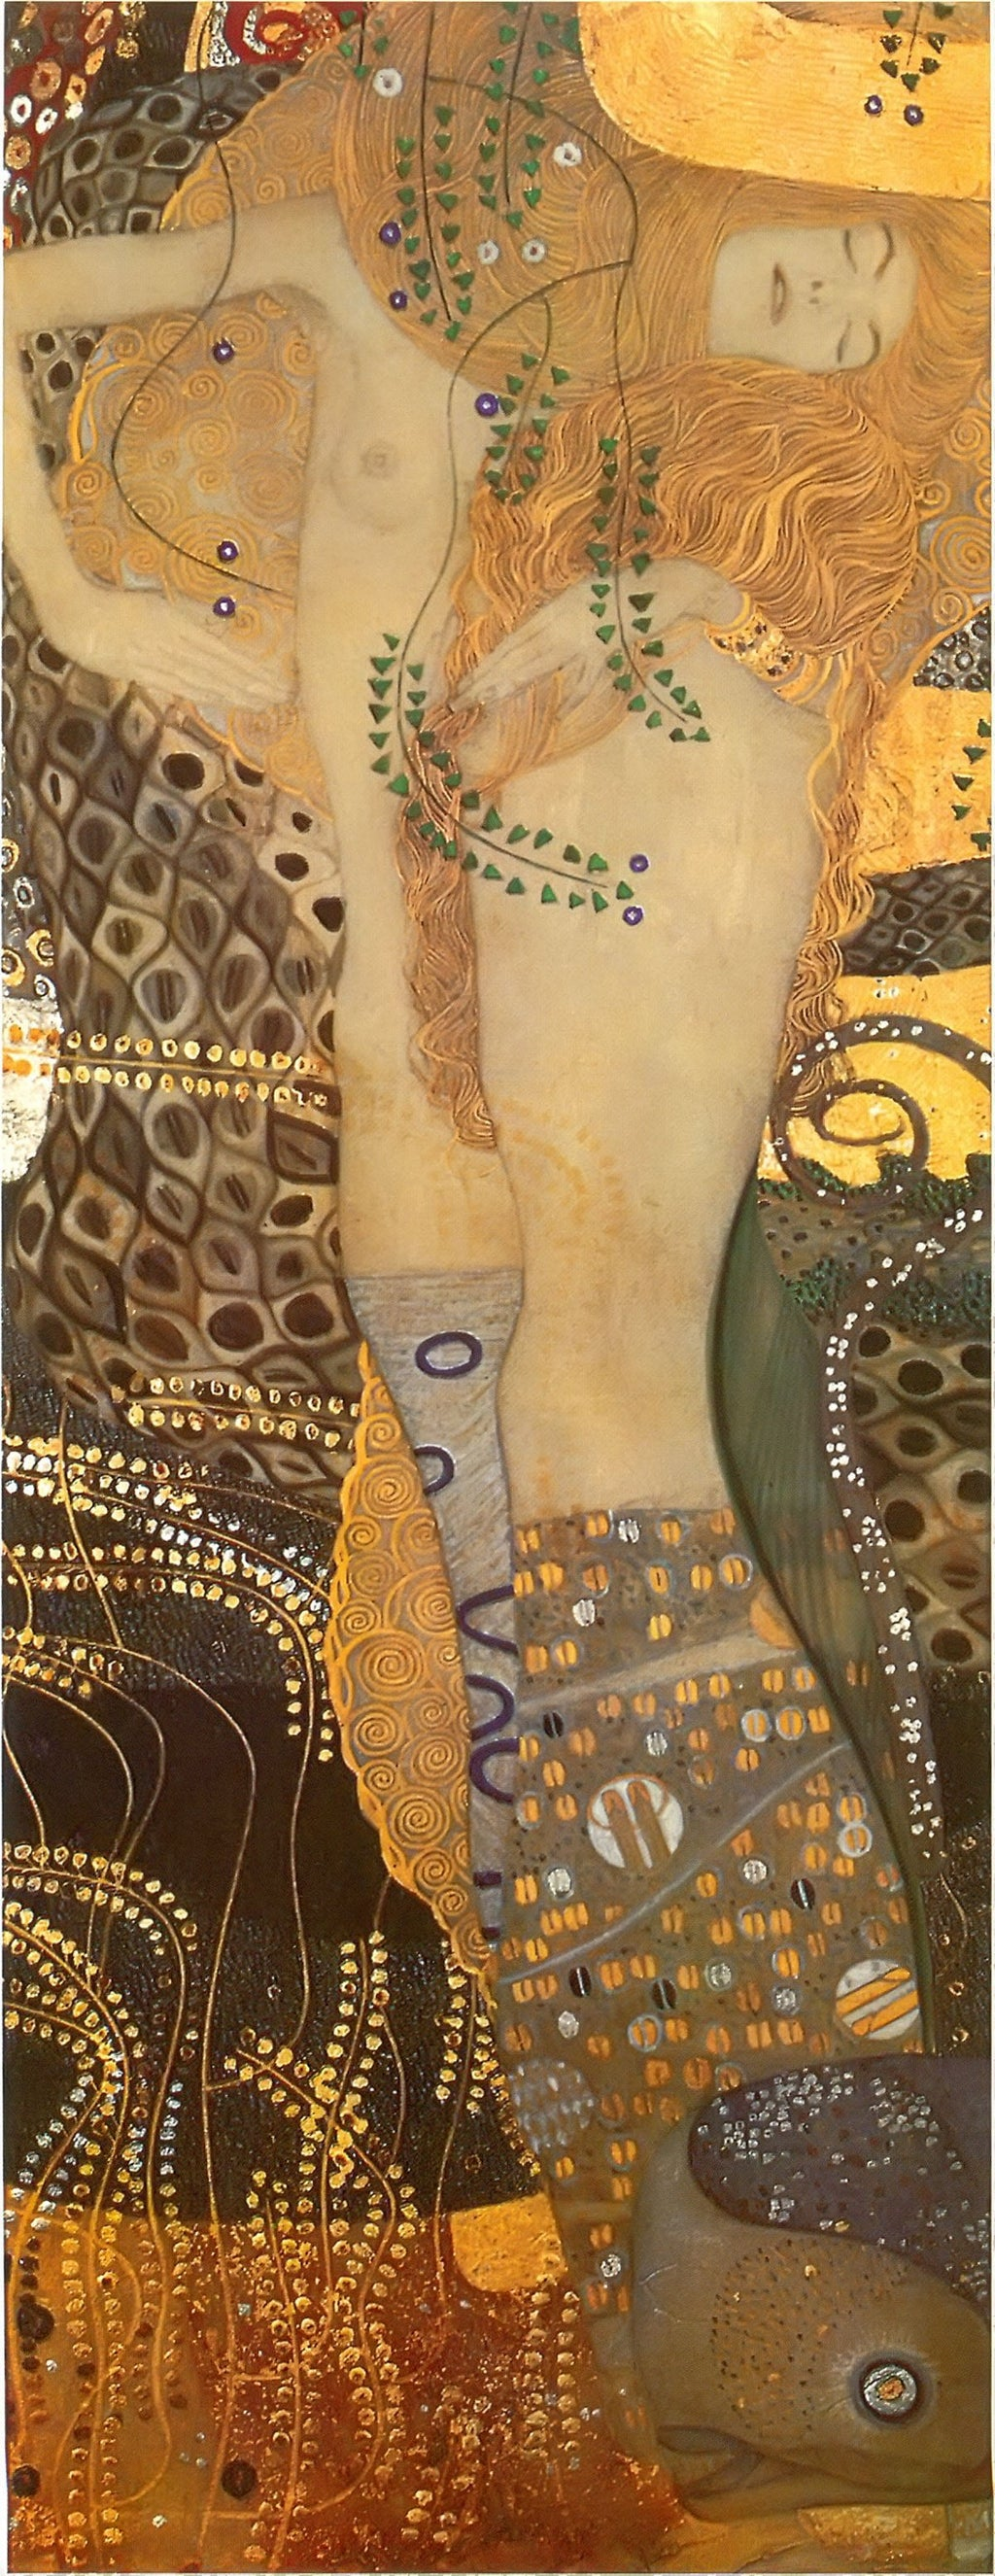 Water Snakes I by Gustav Klimt